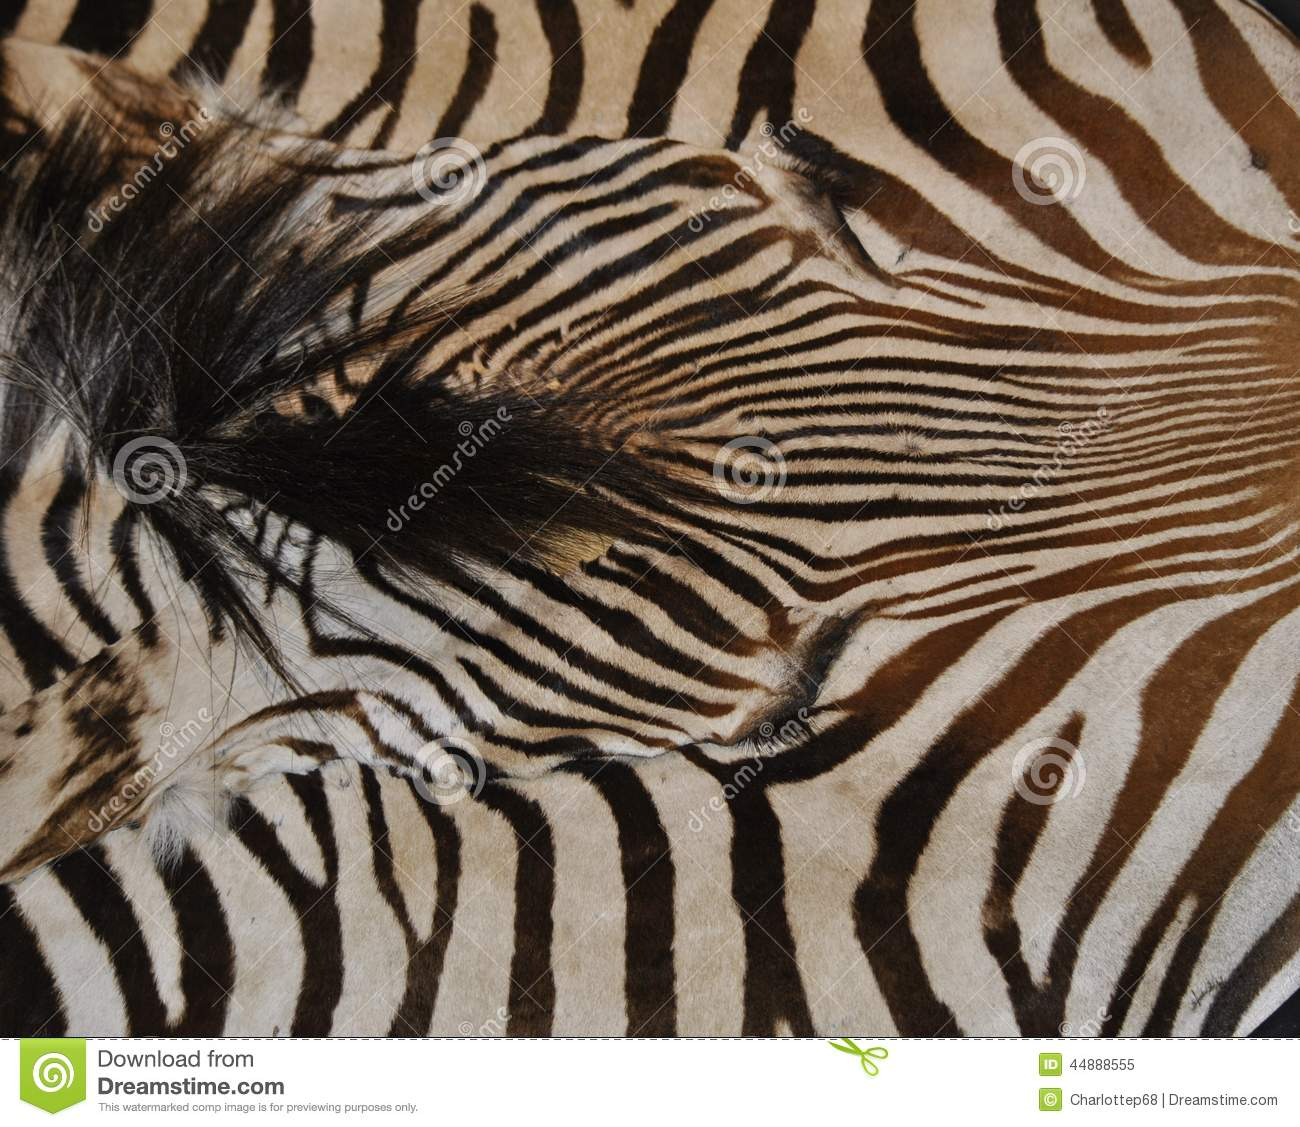 Zebra Print Stock Image. Image Of Striped, Pattern, Unique